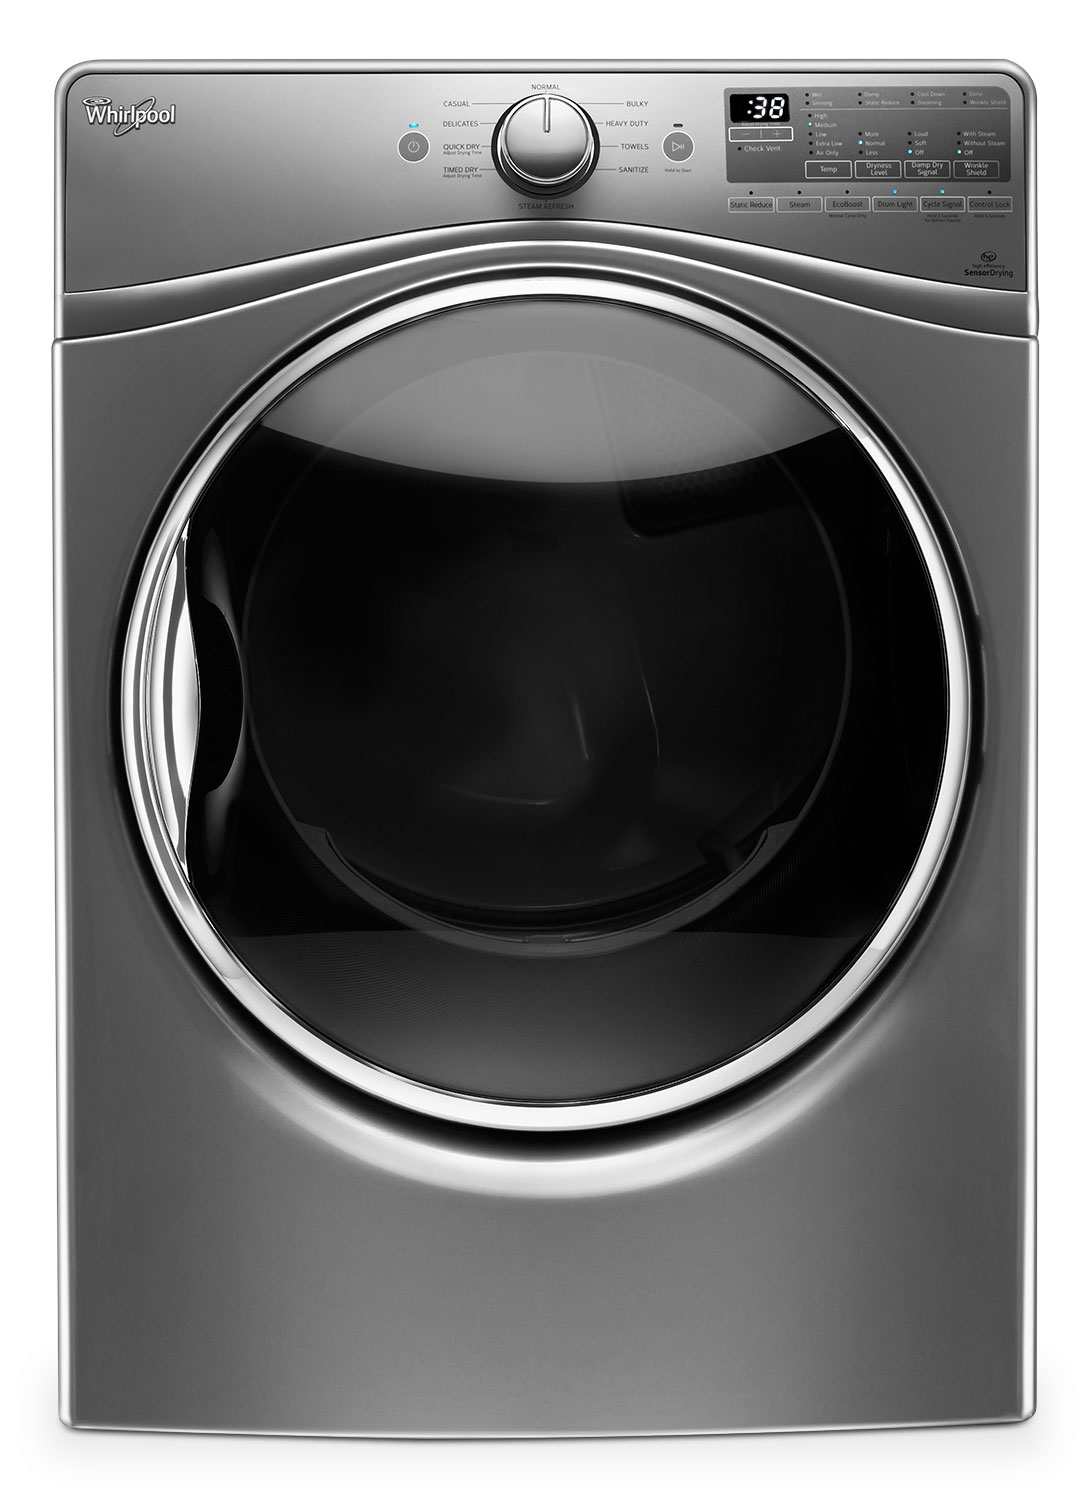 Washers and Dryers - Whirlpool 7.4 Cu. Ft. Gas Dryer – WGD92HEFC